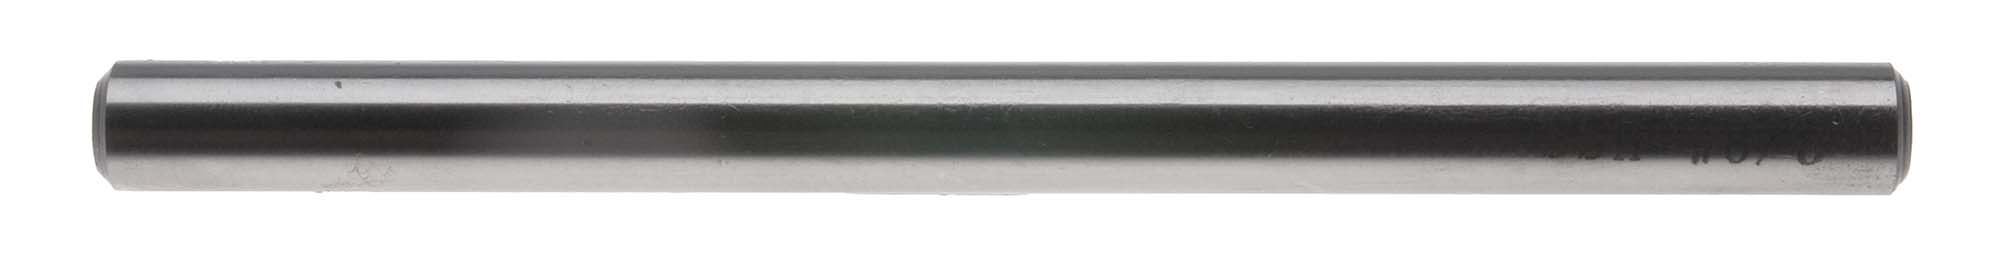 "3/64"" Jobber Length Drill Blank - High Speed Steel"